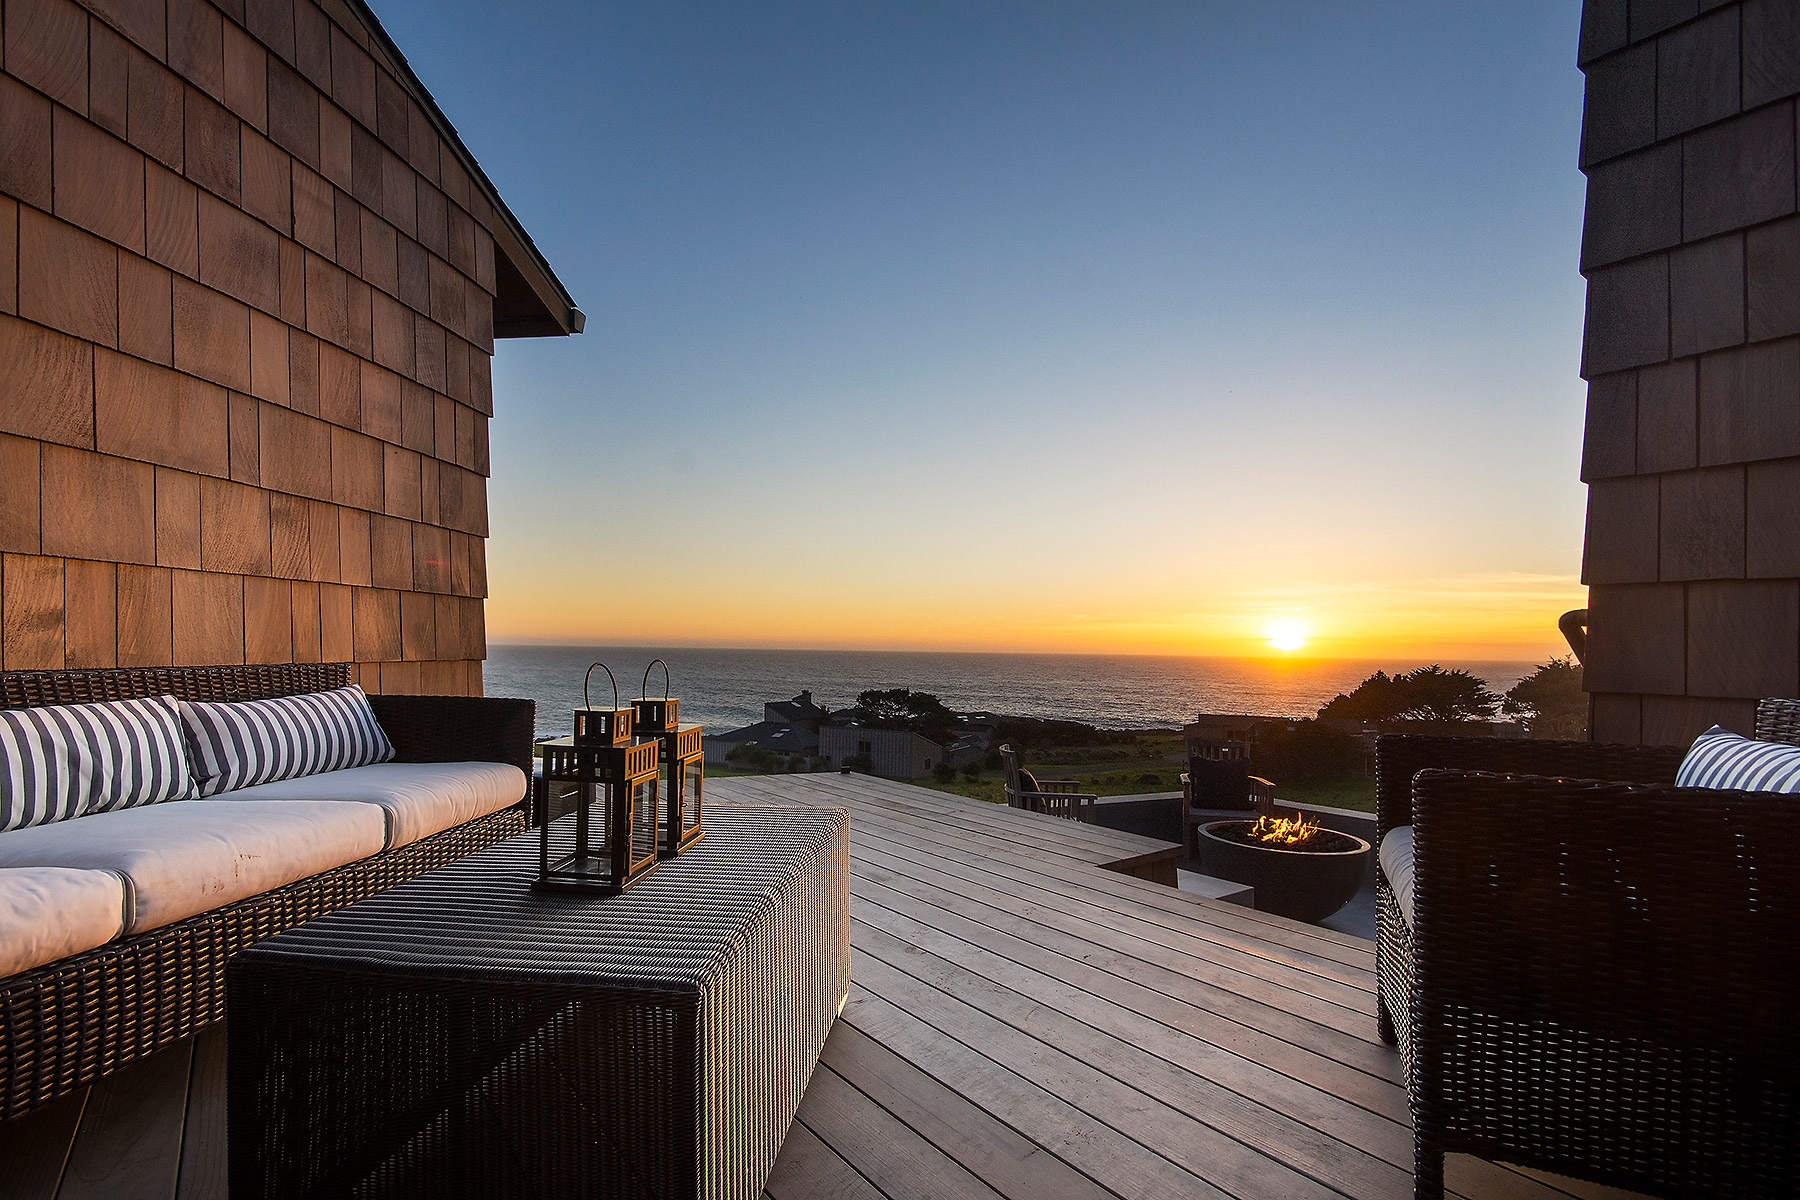 Sunset Oceanview from Deck